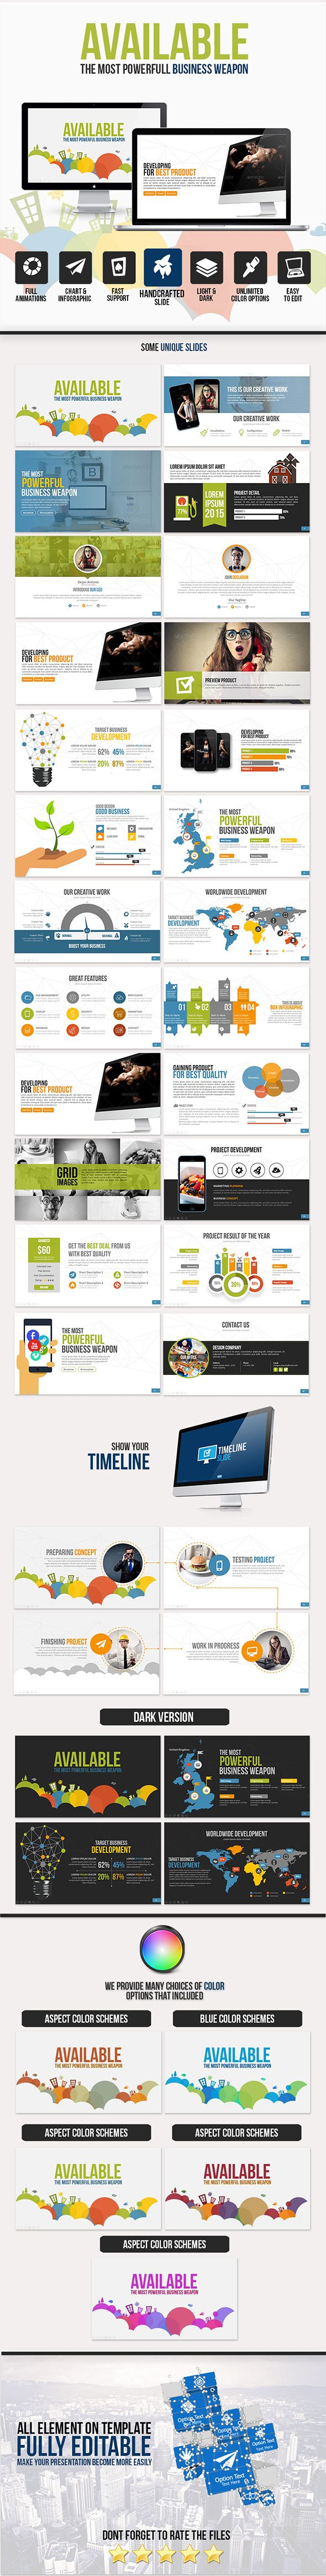 Available PowerPoint Template #design #slides Download: http://graphicriver.net/item/available-powerpoint-template/10924156?ref=ksioks